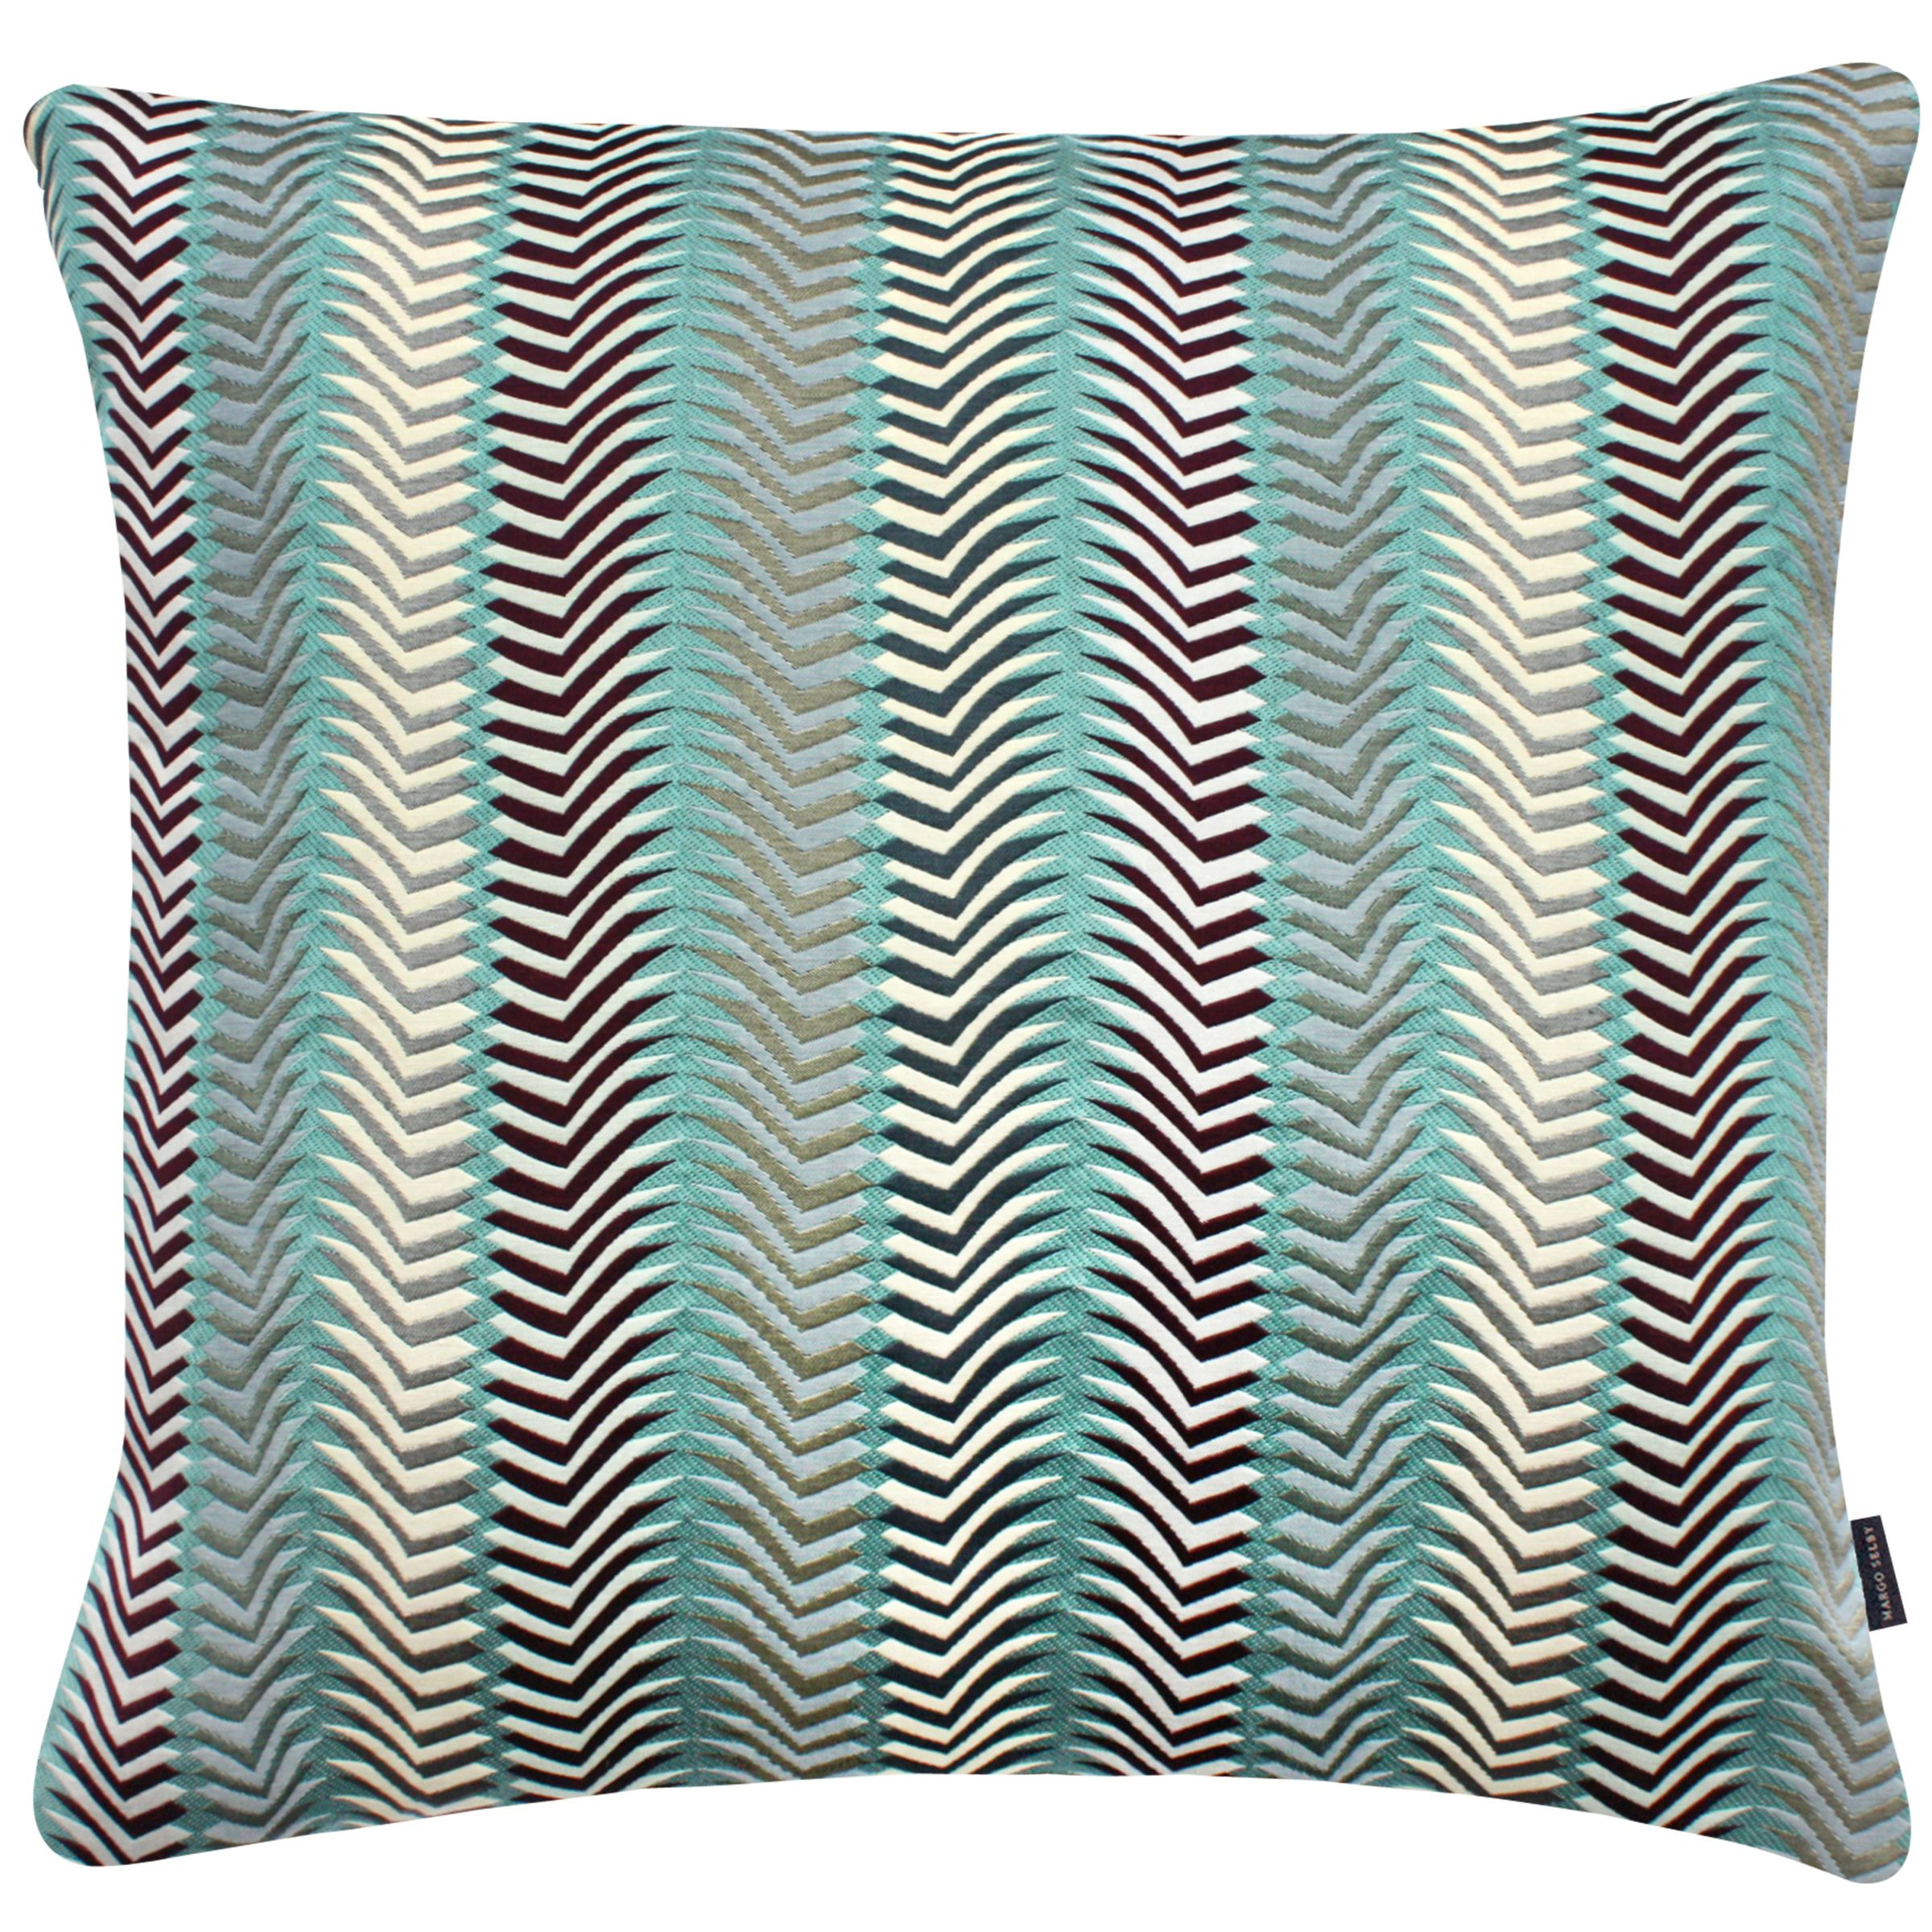 Margo Selby for John Lewis Margo Selby for John Lewis Chester Cushion, Multi